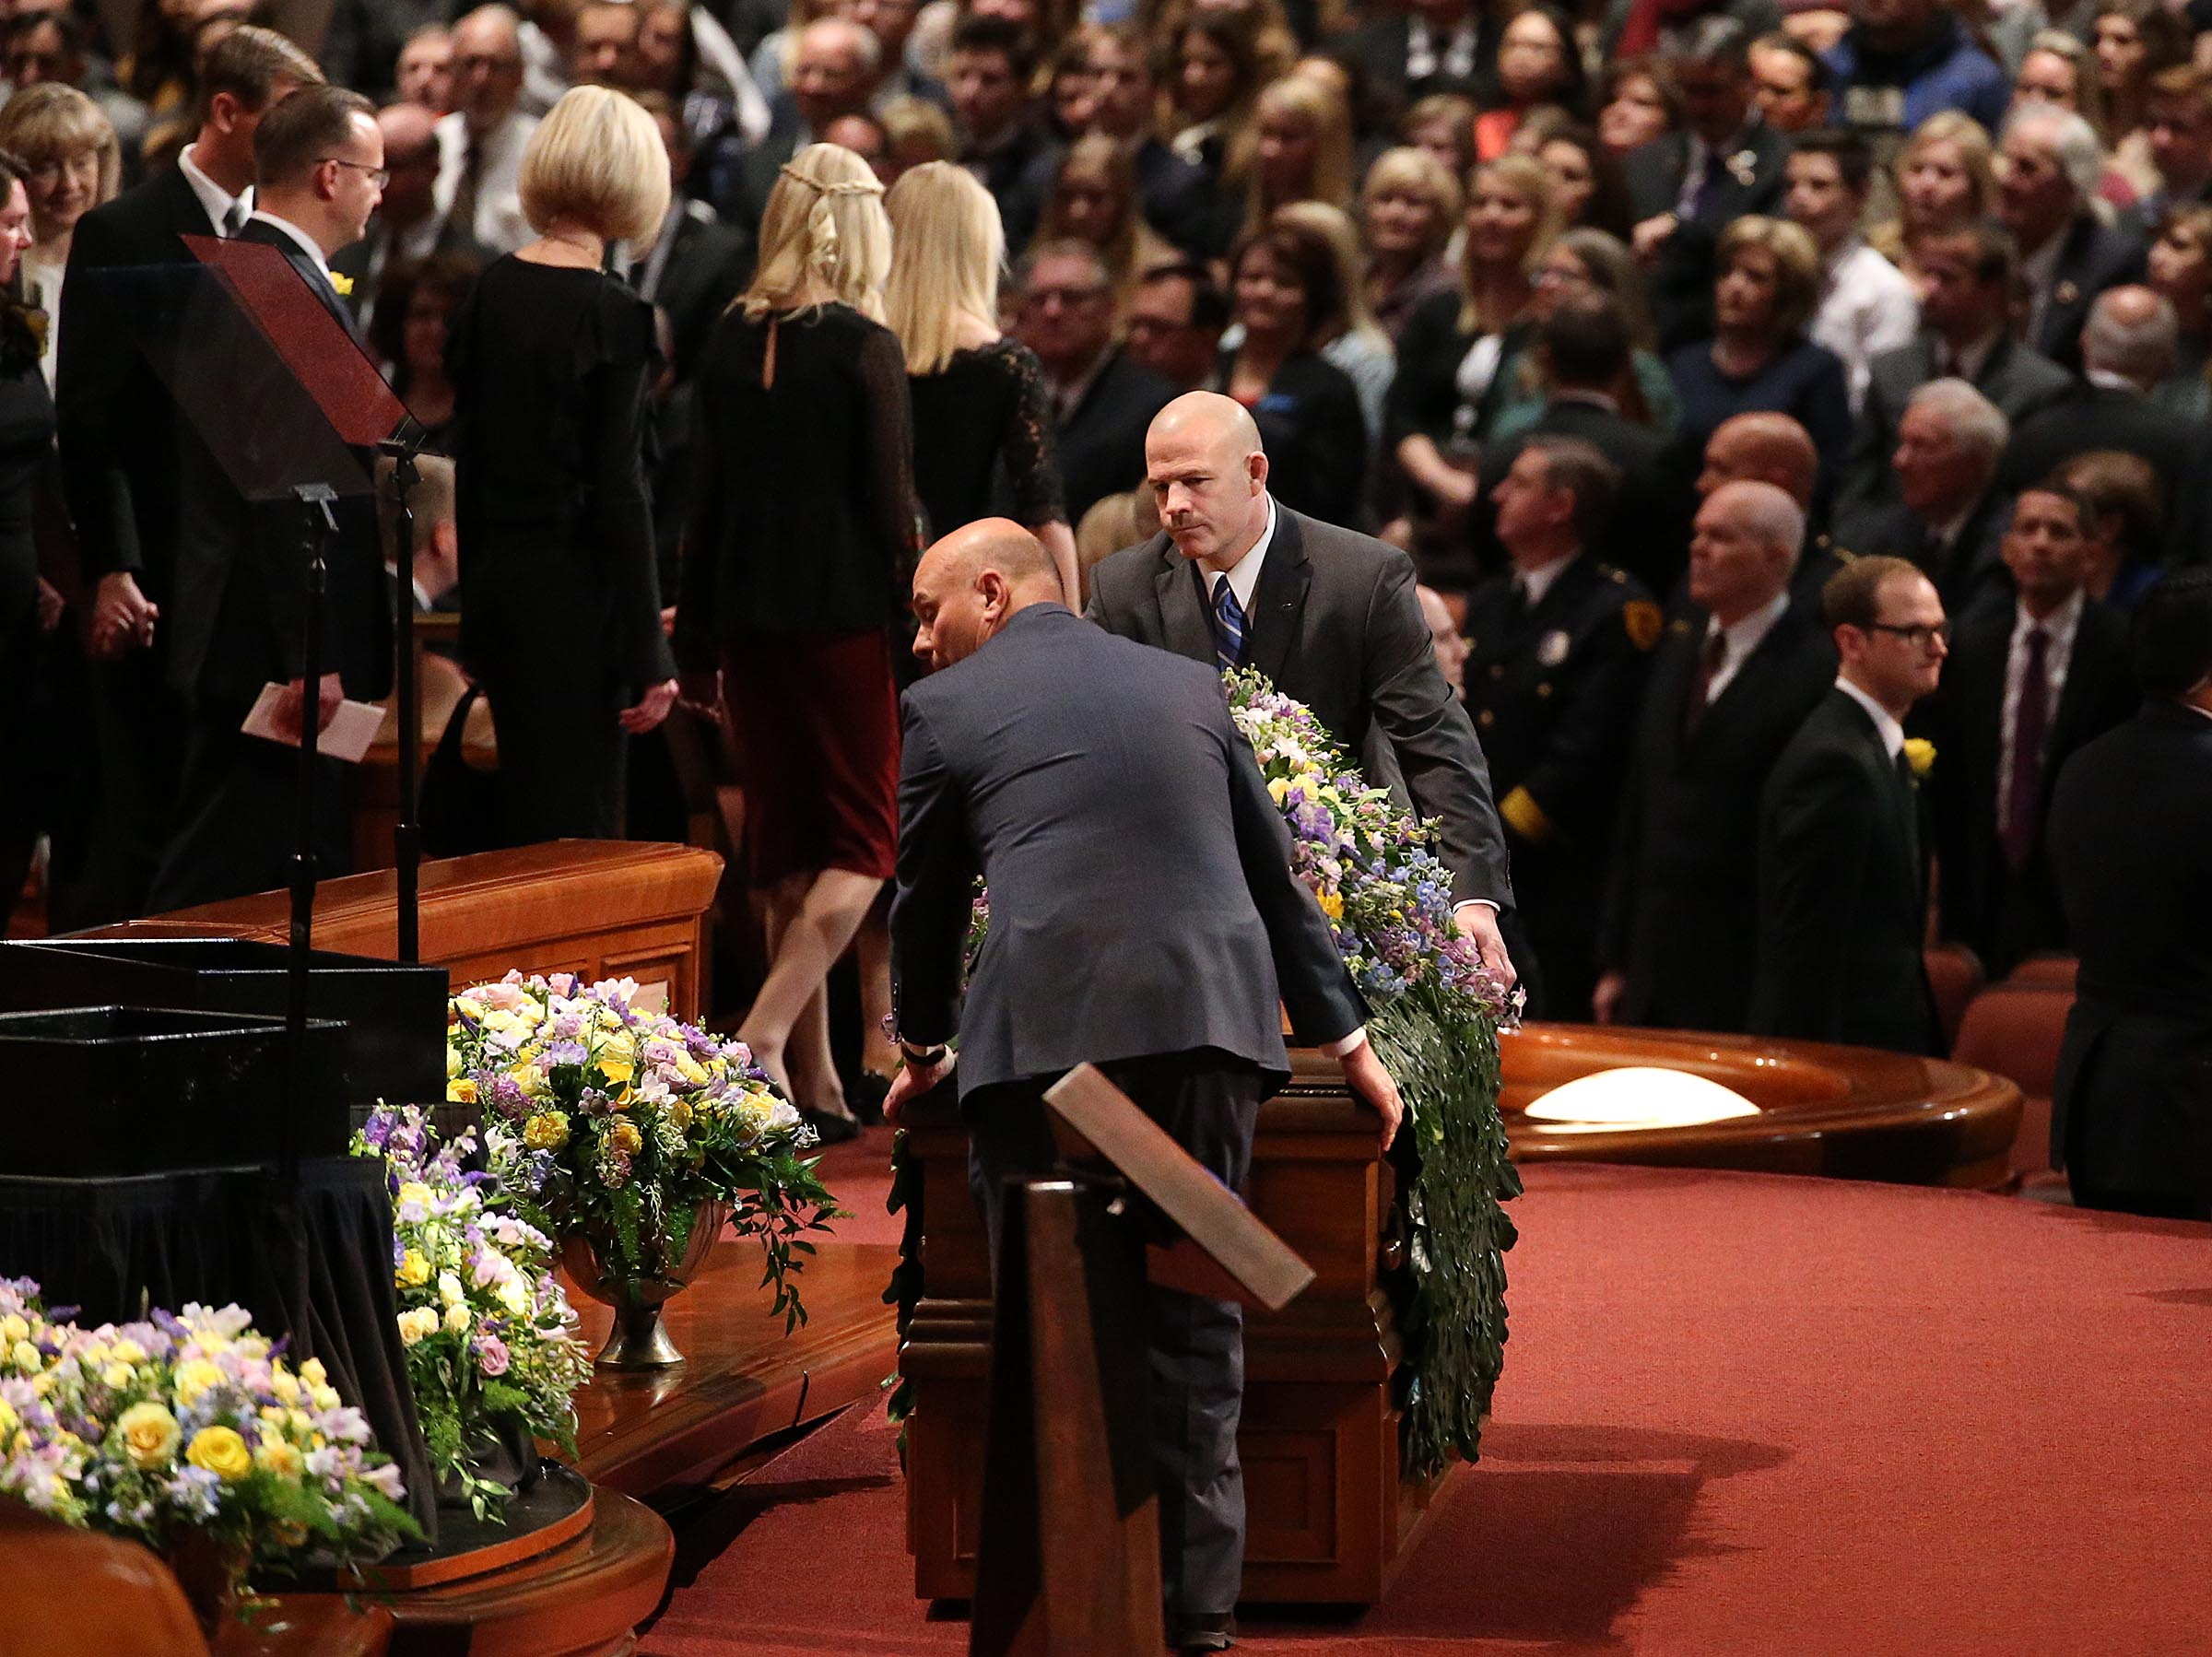 Church President Thomas S. Monson's casket it moved into the Conference Center in Salt Lake City on Friday, Jan. 12, 2018.